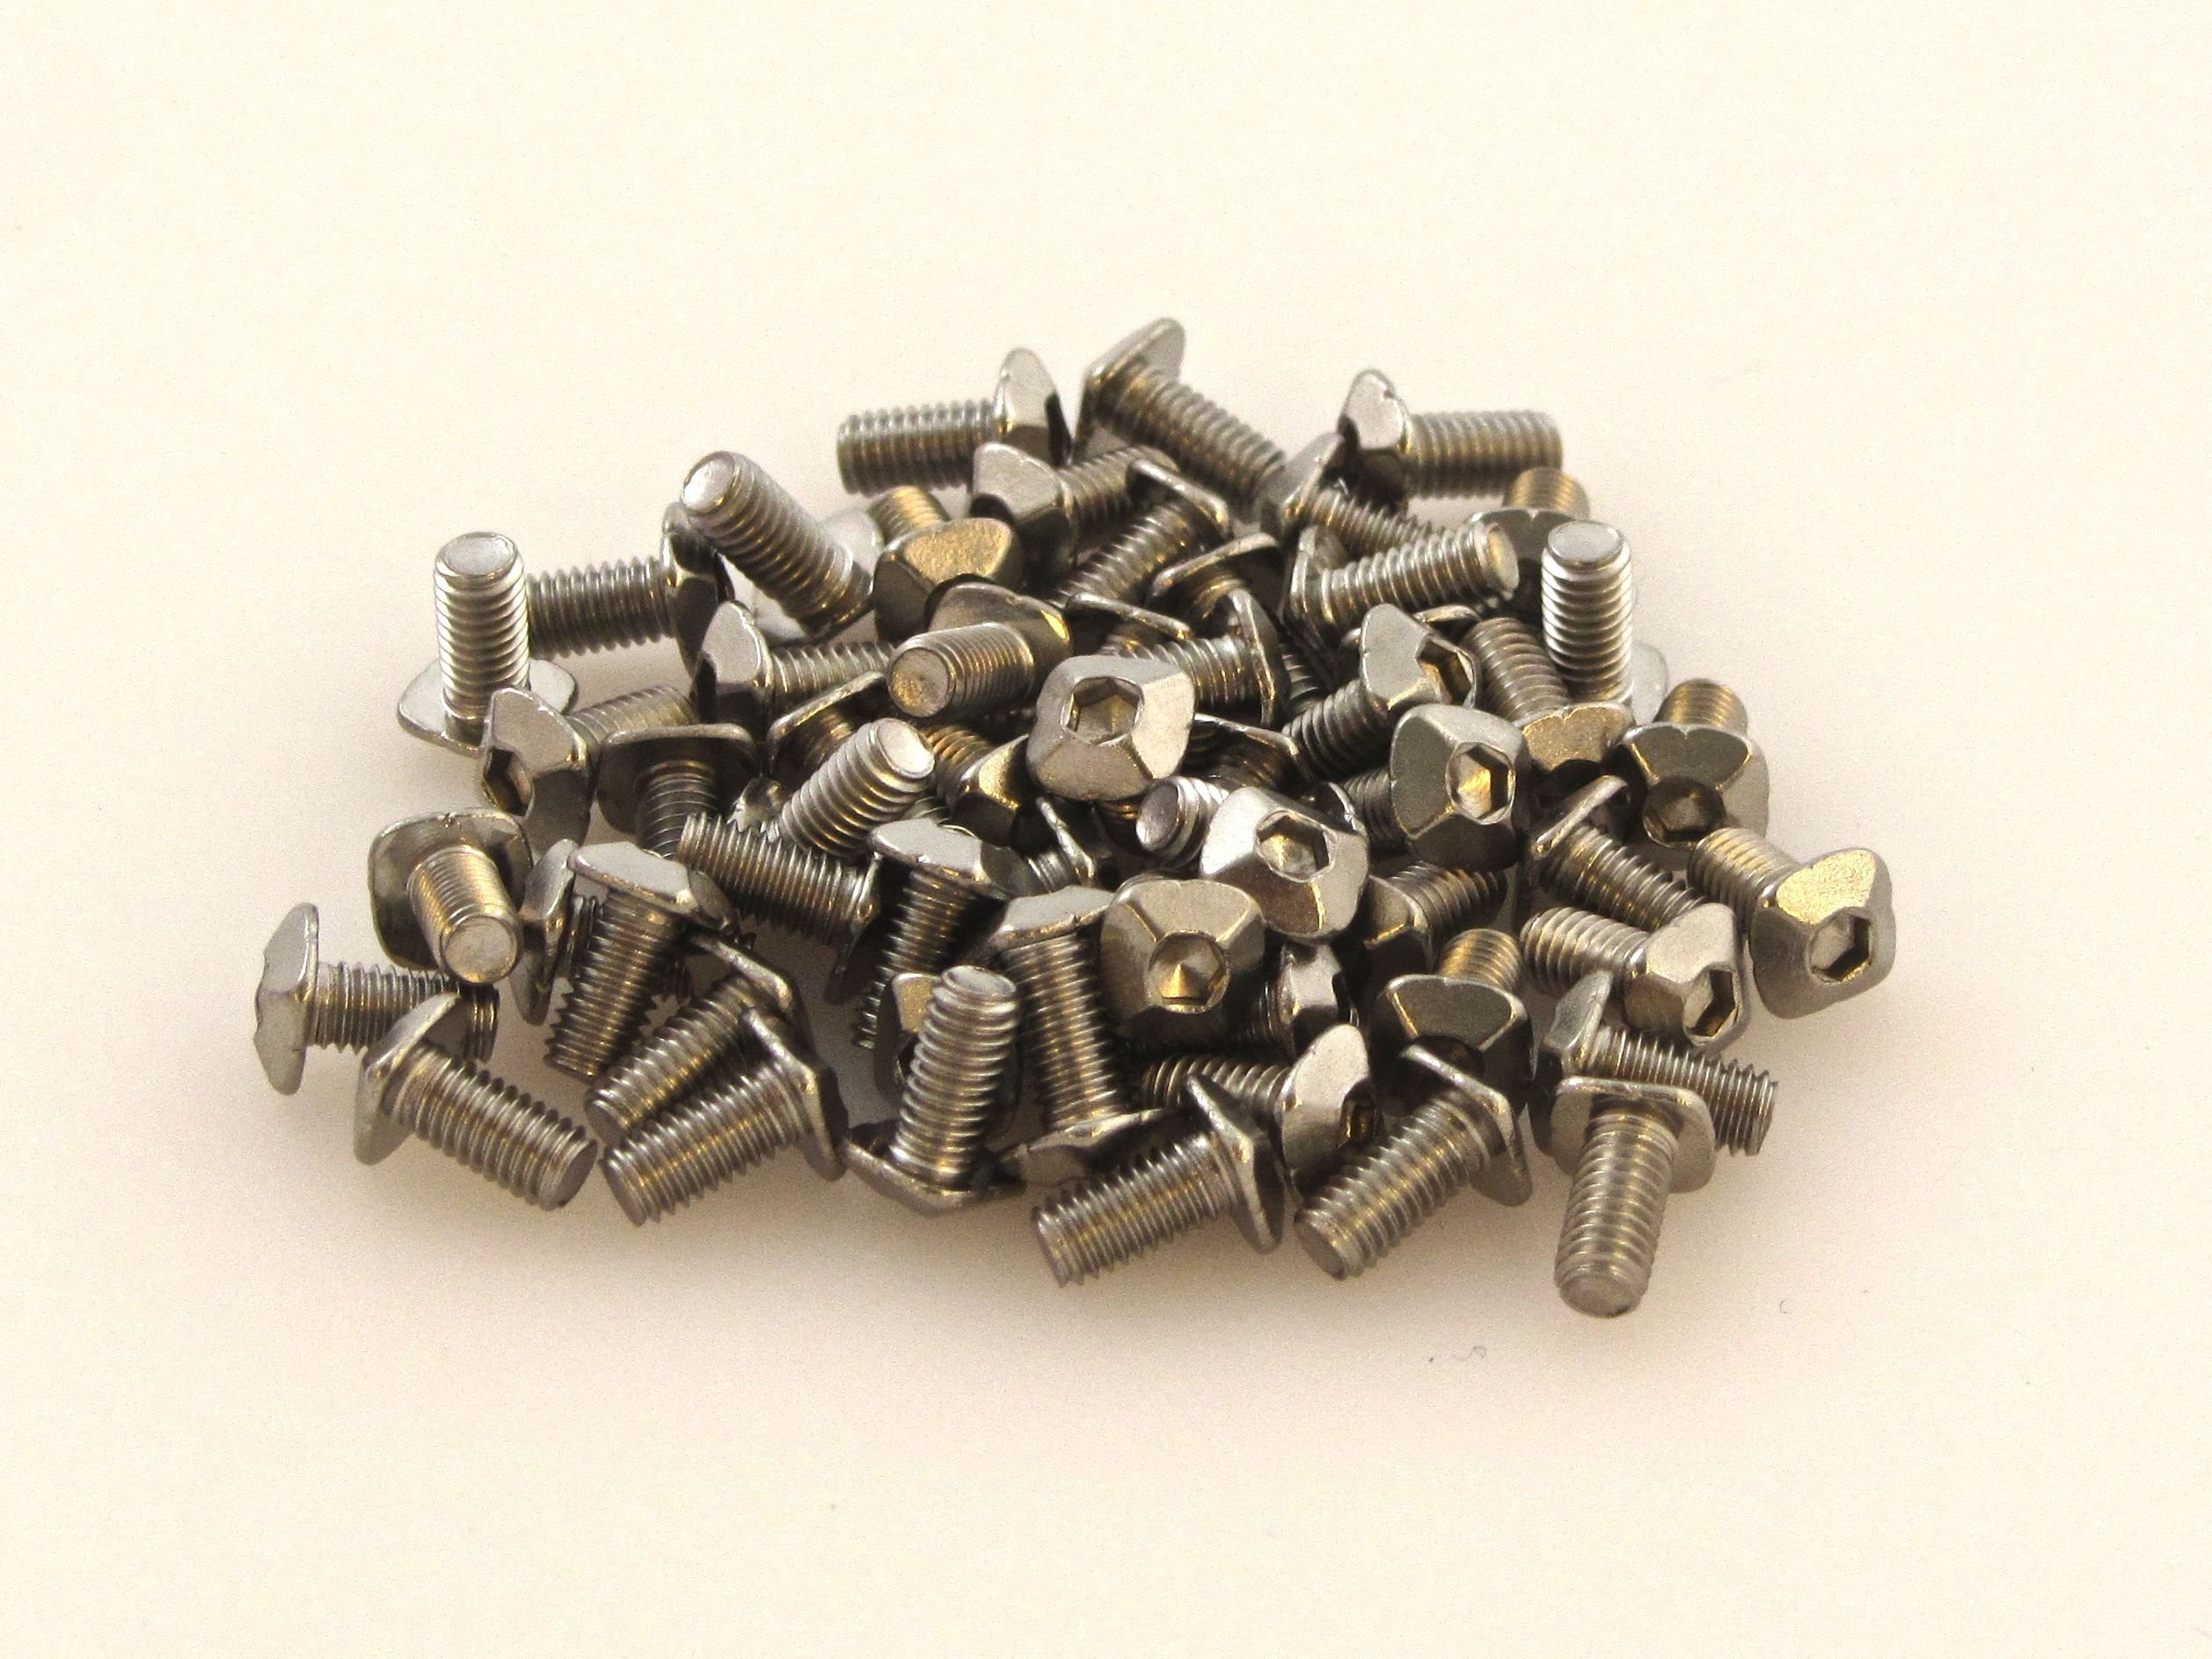 MakerBeam M3 bolts with square head, 6mm (pack of 250) designed for MakerBeam (10x10mm in diameter).